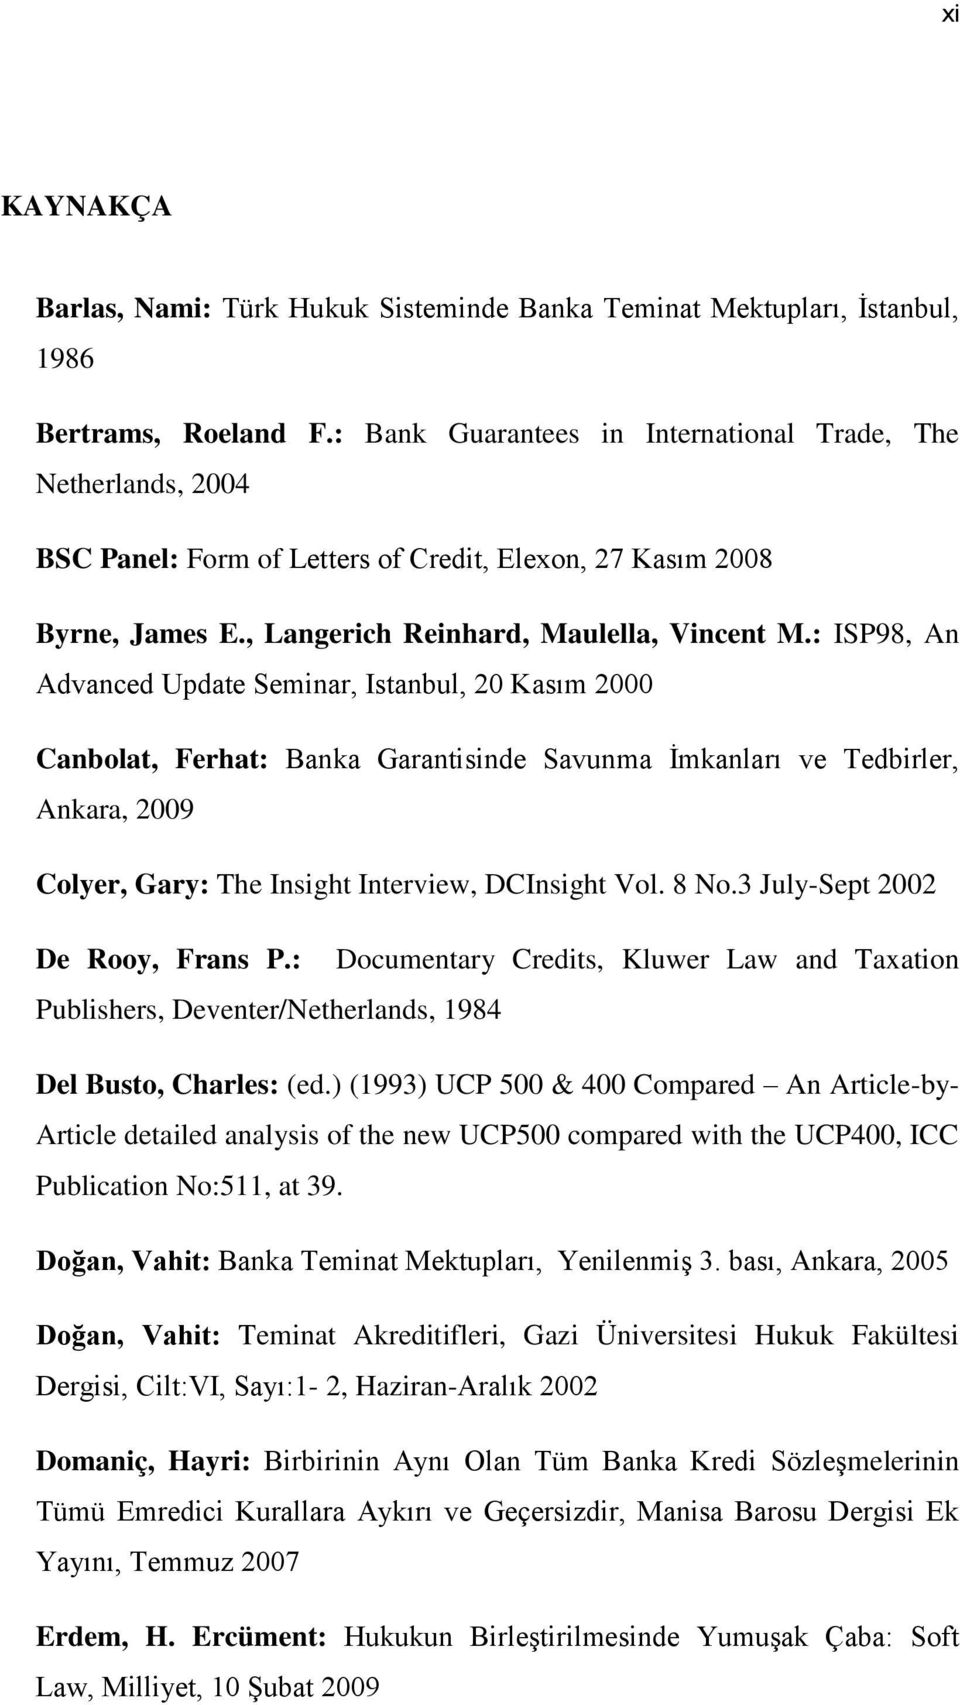 : ISP98, An Advanced Update Seminar, Istanbul, 20 Kasım 2000 Canbolat, Ferhat: Banka Garantisinde Savunma Ġmkanları ve Tedbirler, Ankara, 2009 Colyer, Gary: The Insight Interview, DCInsight Vol. 8 No.